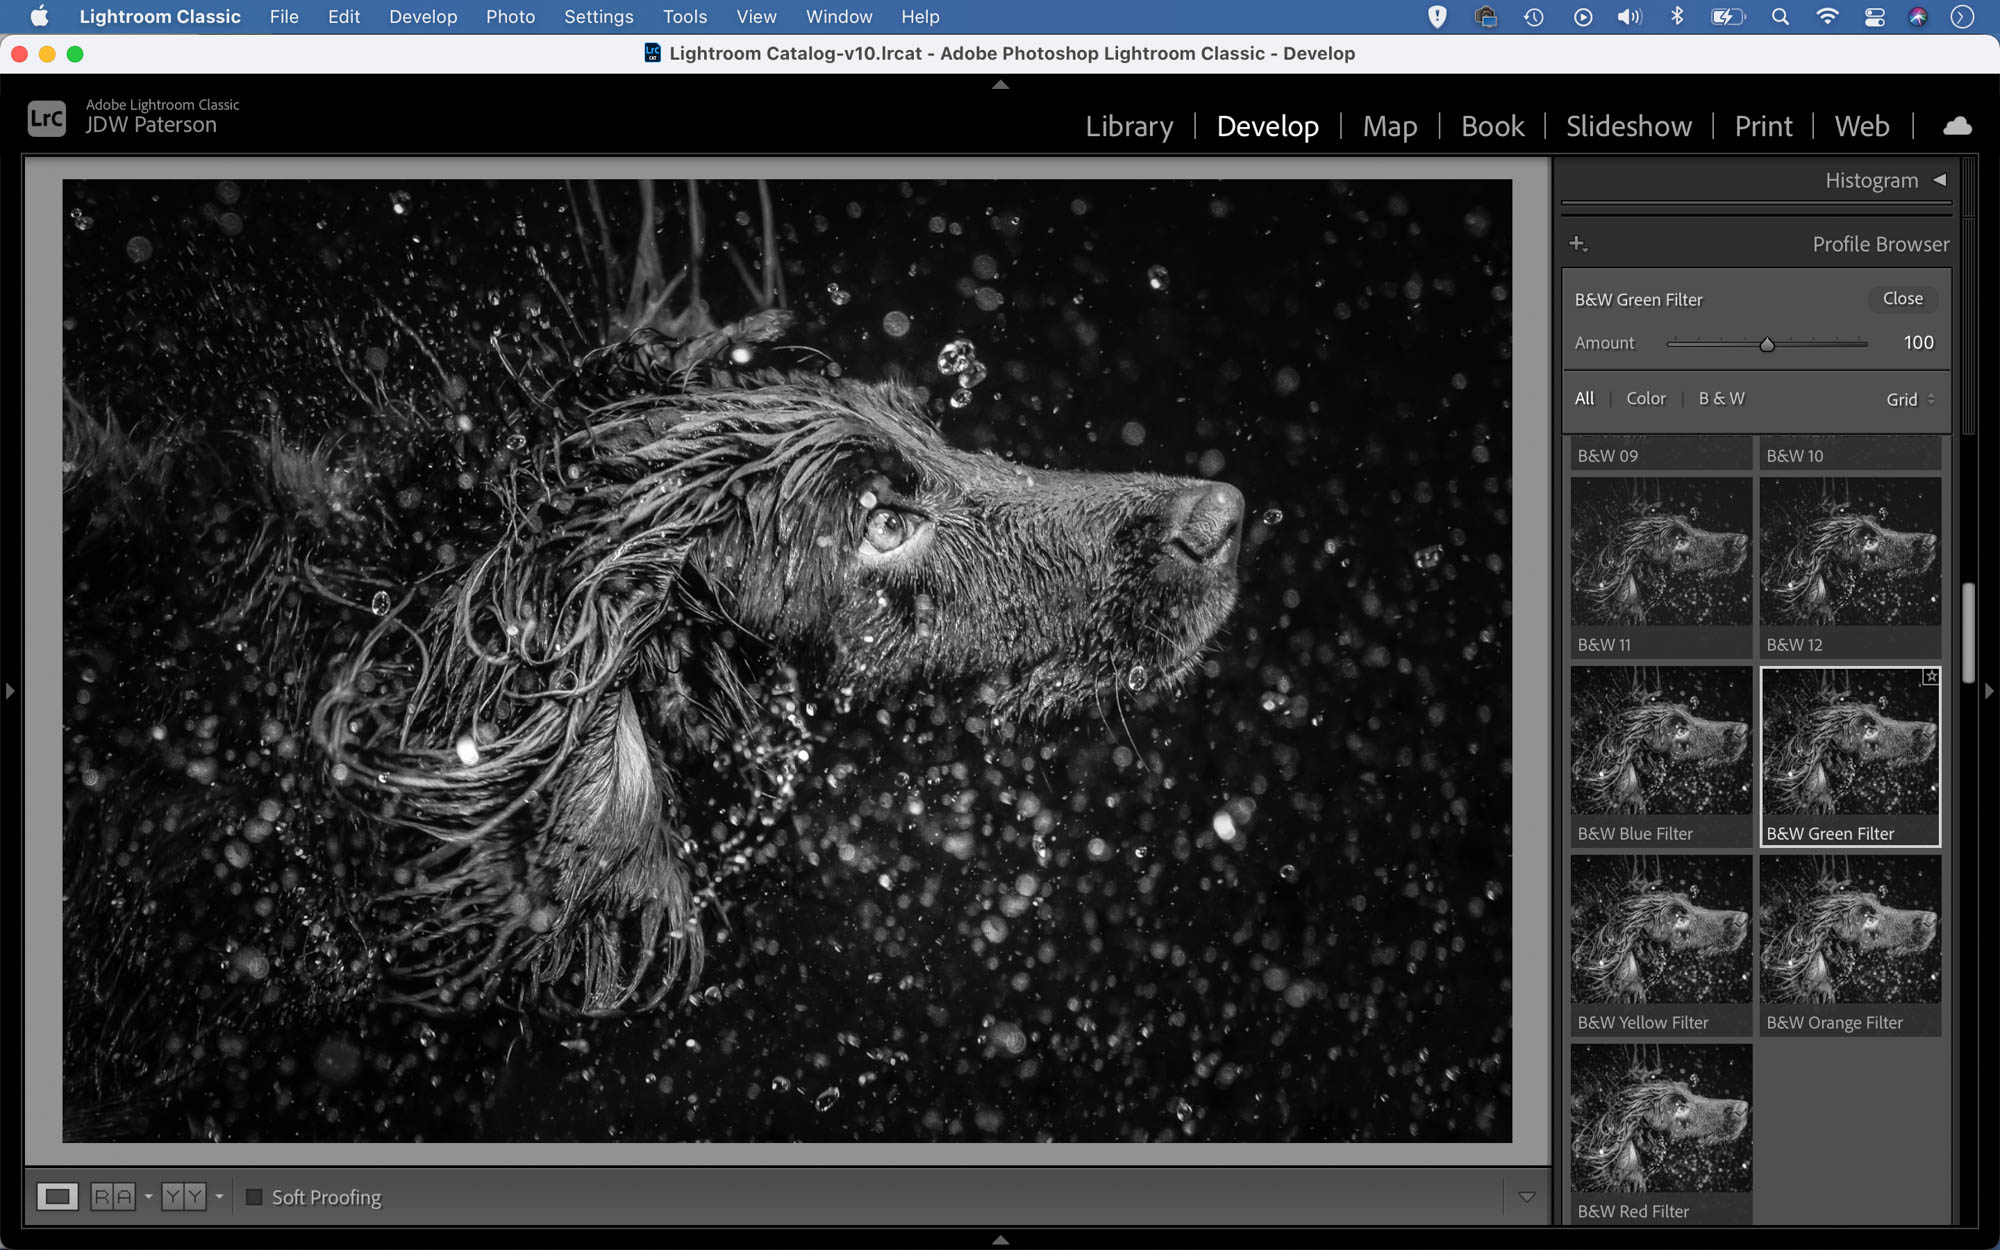 Converting a dog portrait to black and white in Adobe Lightroom